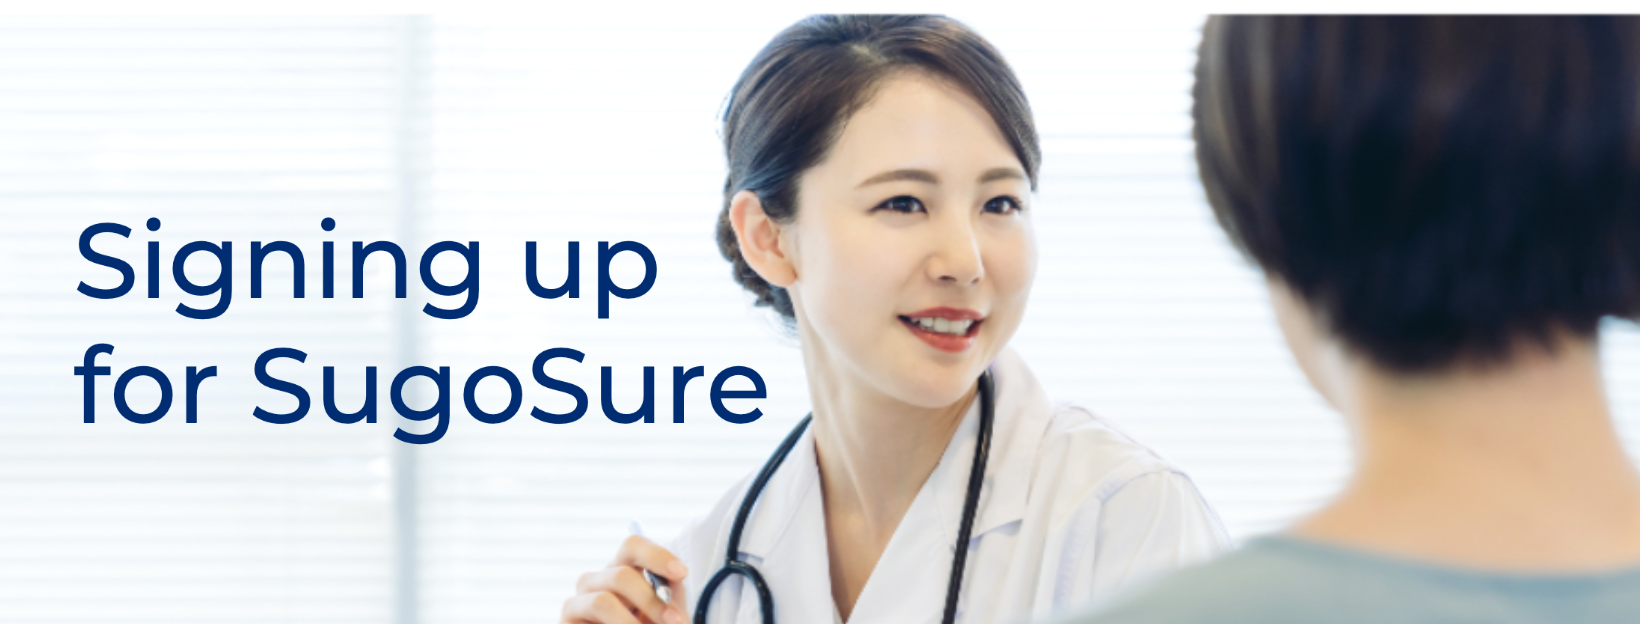 Page Header Signing up for SugoSure